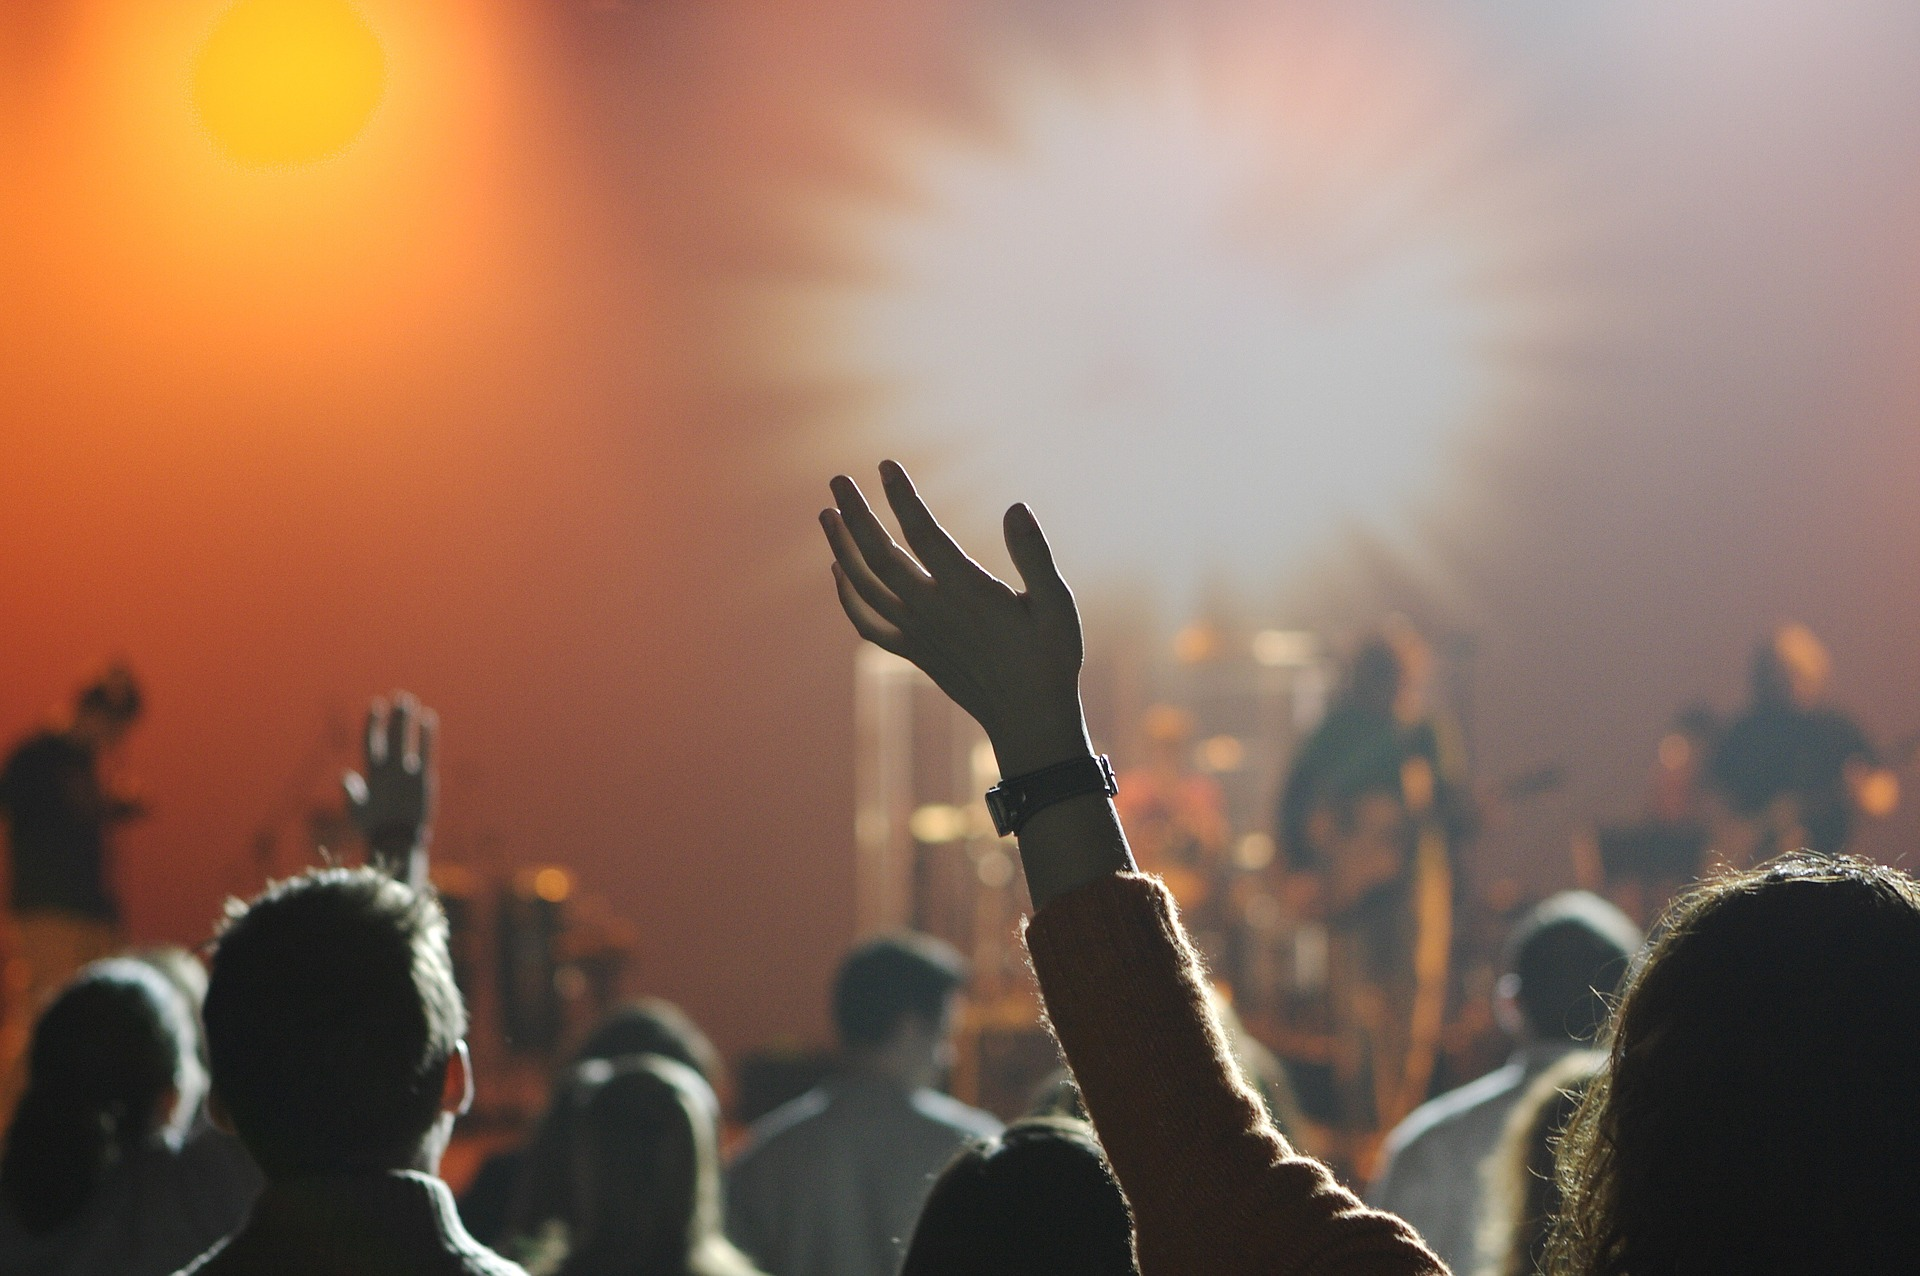 CONCERT TICKETS - Need help sourcing unforgettable concert tickets? Our Concierges have amazing connections to get you access to the best tickets from sold out shows.